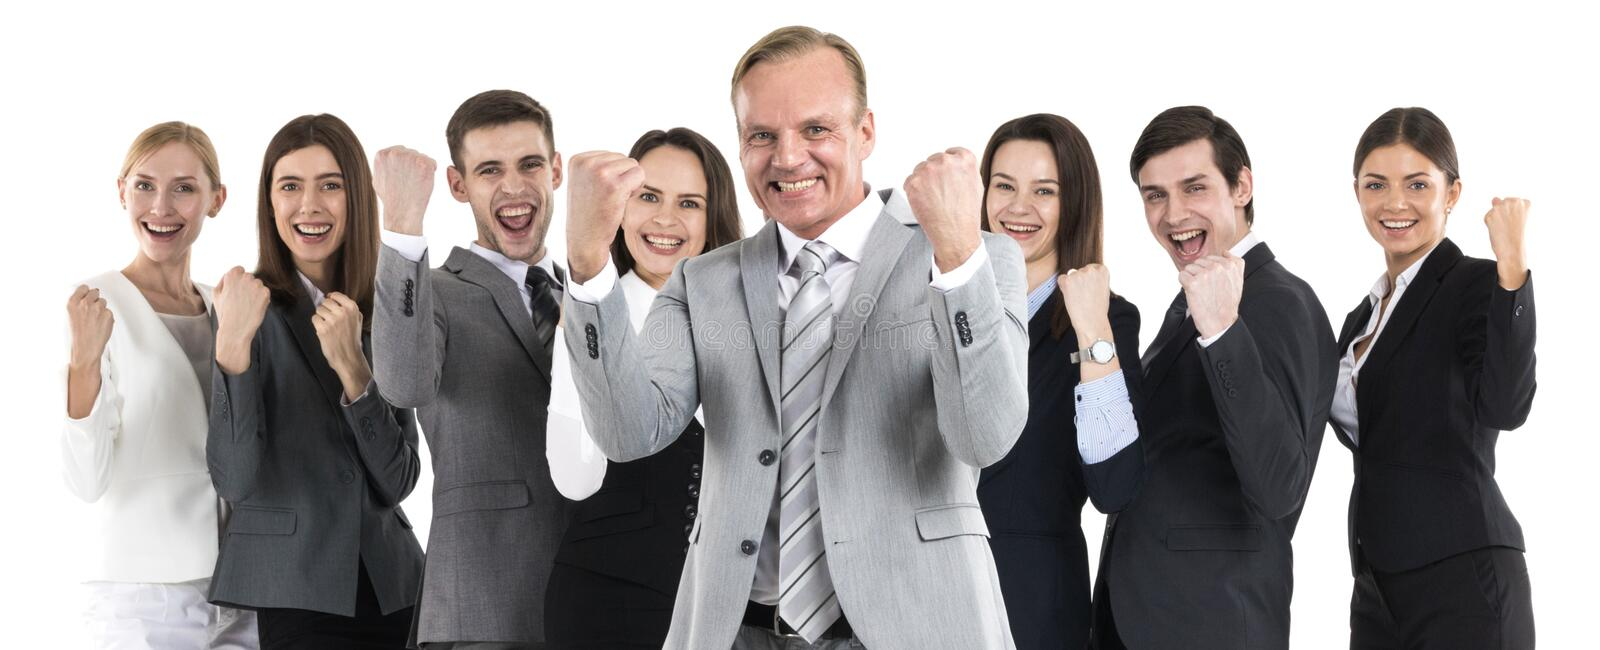 Successful excited business people royalty free stock image